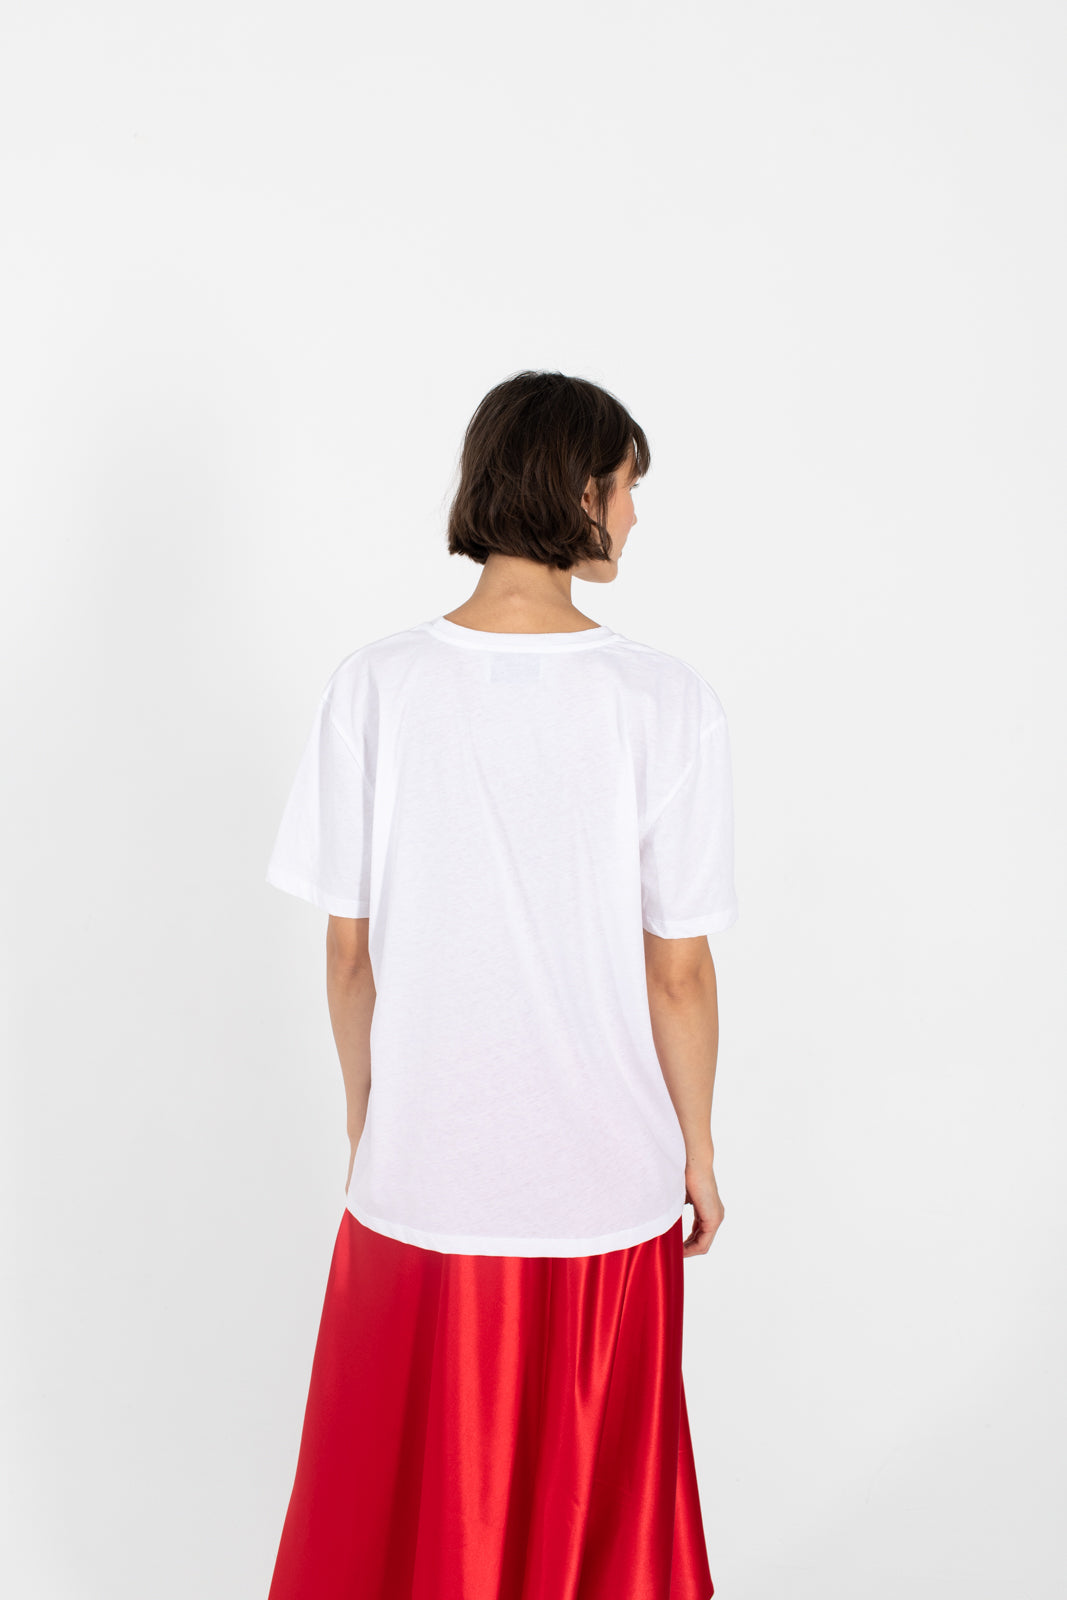 Le SLAP | RUSSKI white organic cotton t-shirt